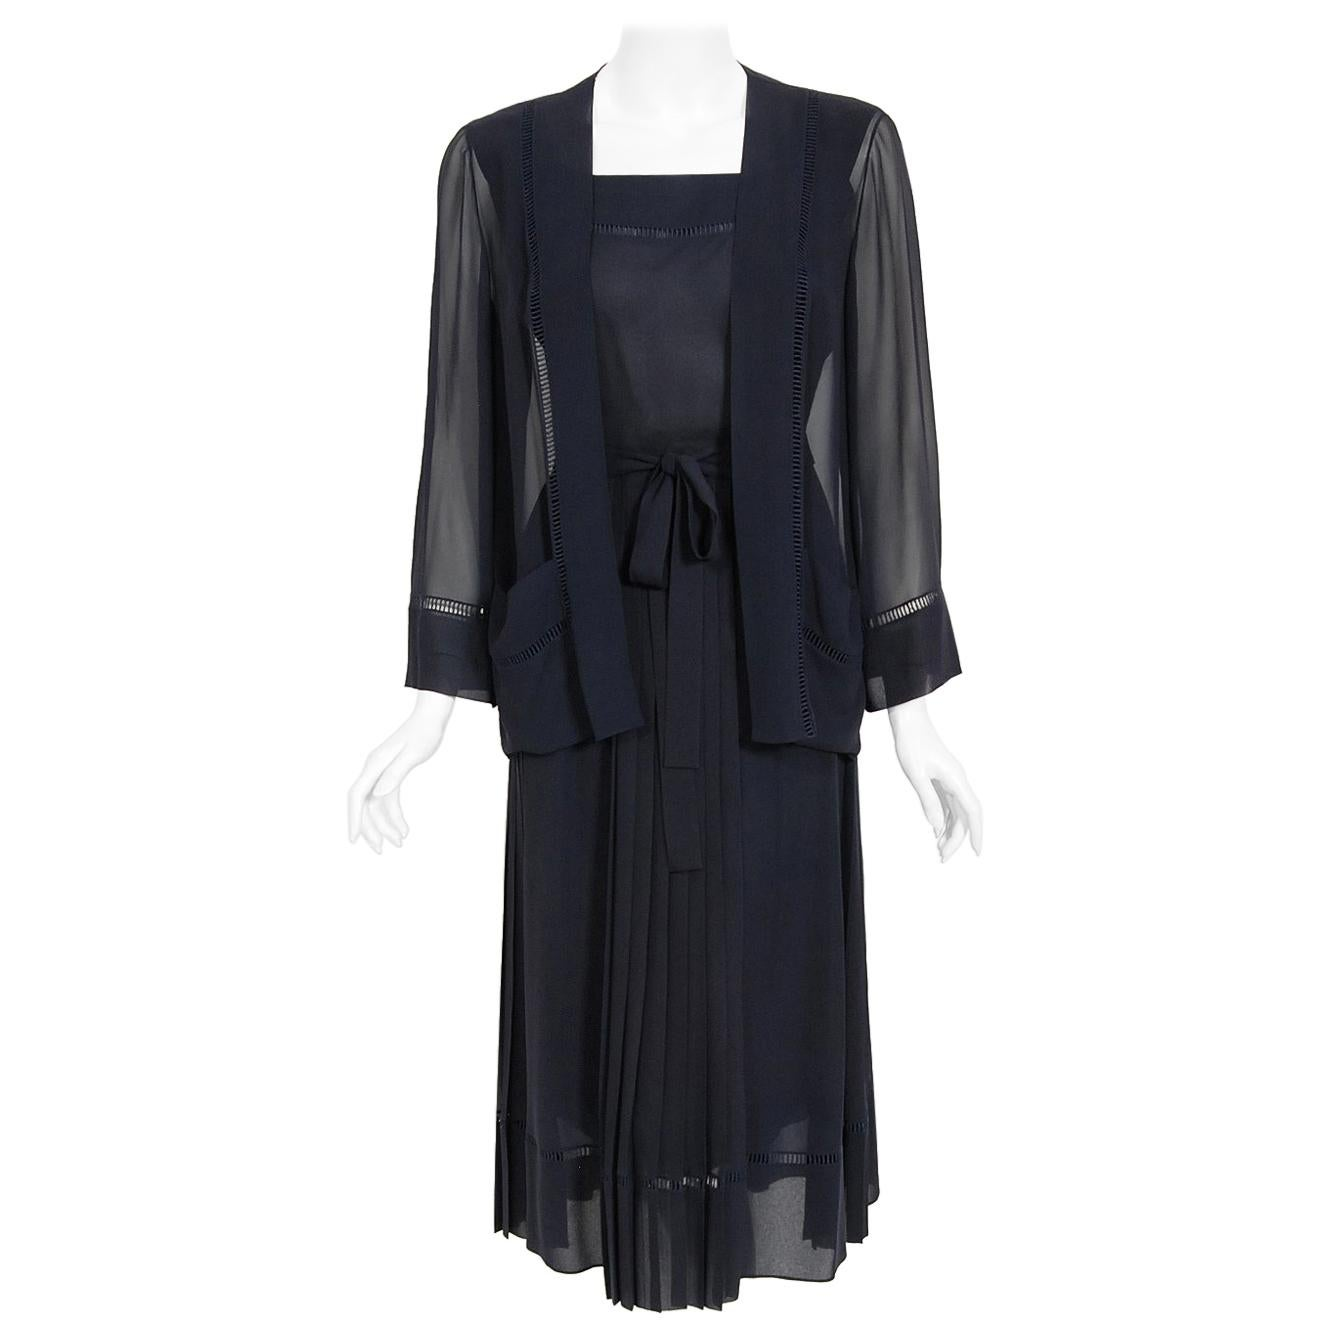 Vintage 1974 Christian Dior Haute Couture Navy Pleated Silk Cutwork Dress Set